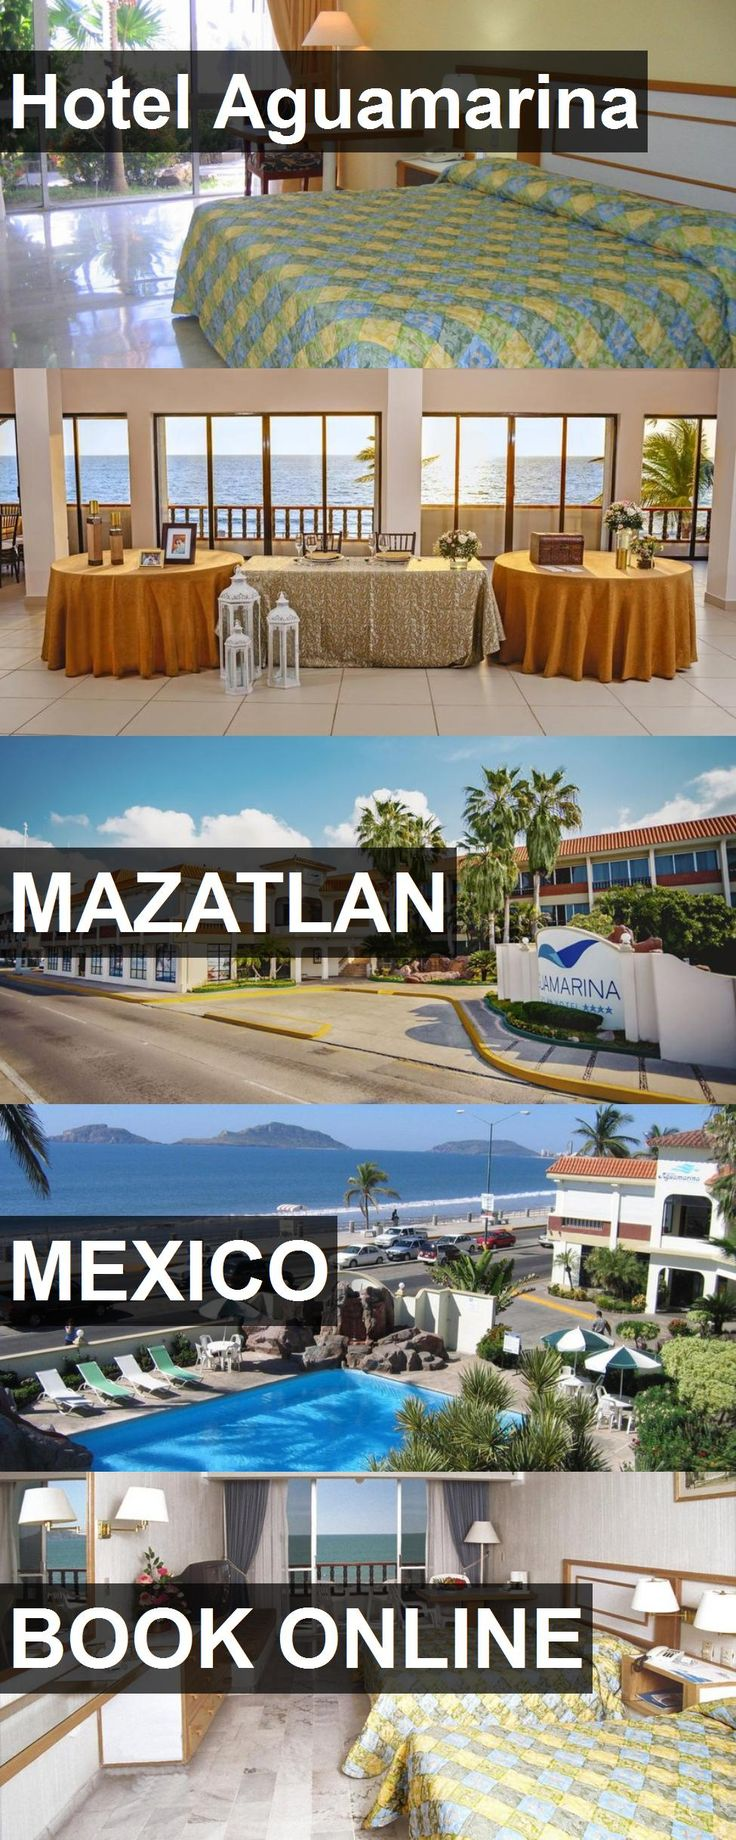 Hotel Aguamarina in Mazatlan, Mexico. For more information, photos, reviews and best prices please follow the link. #Mexico #Mazatlan #travel #vacation #hotel